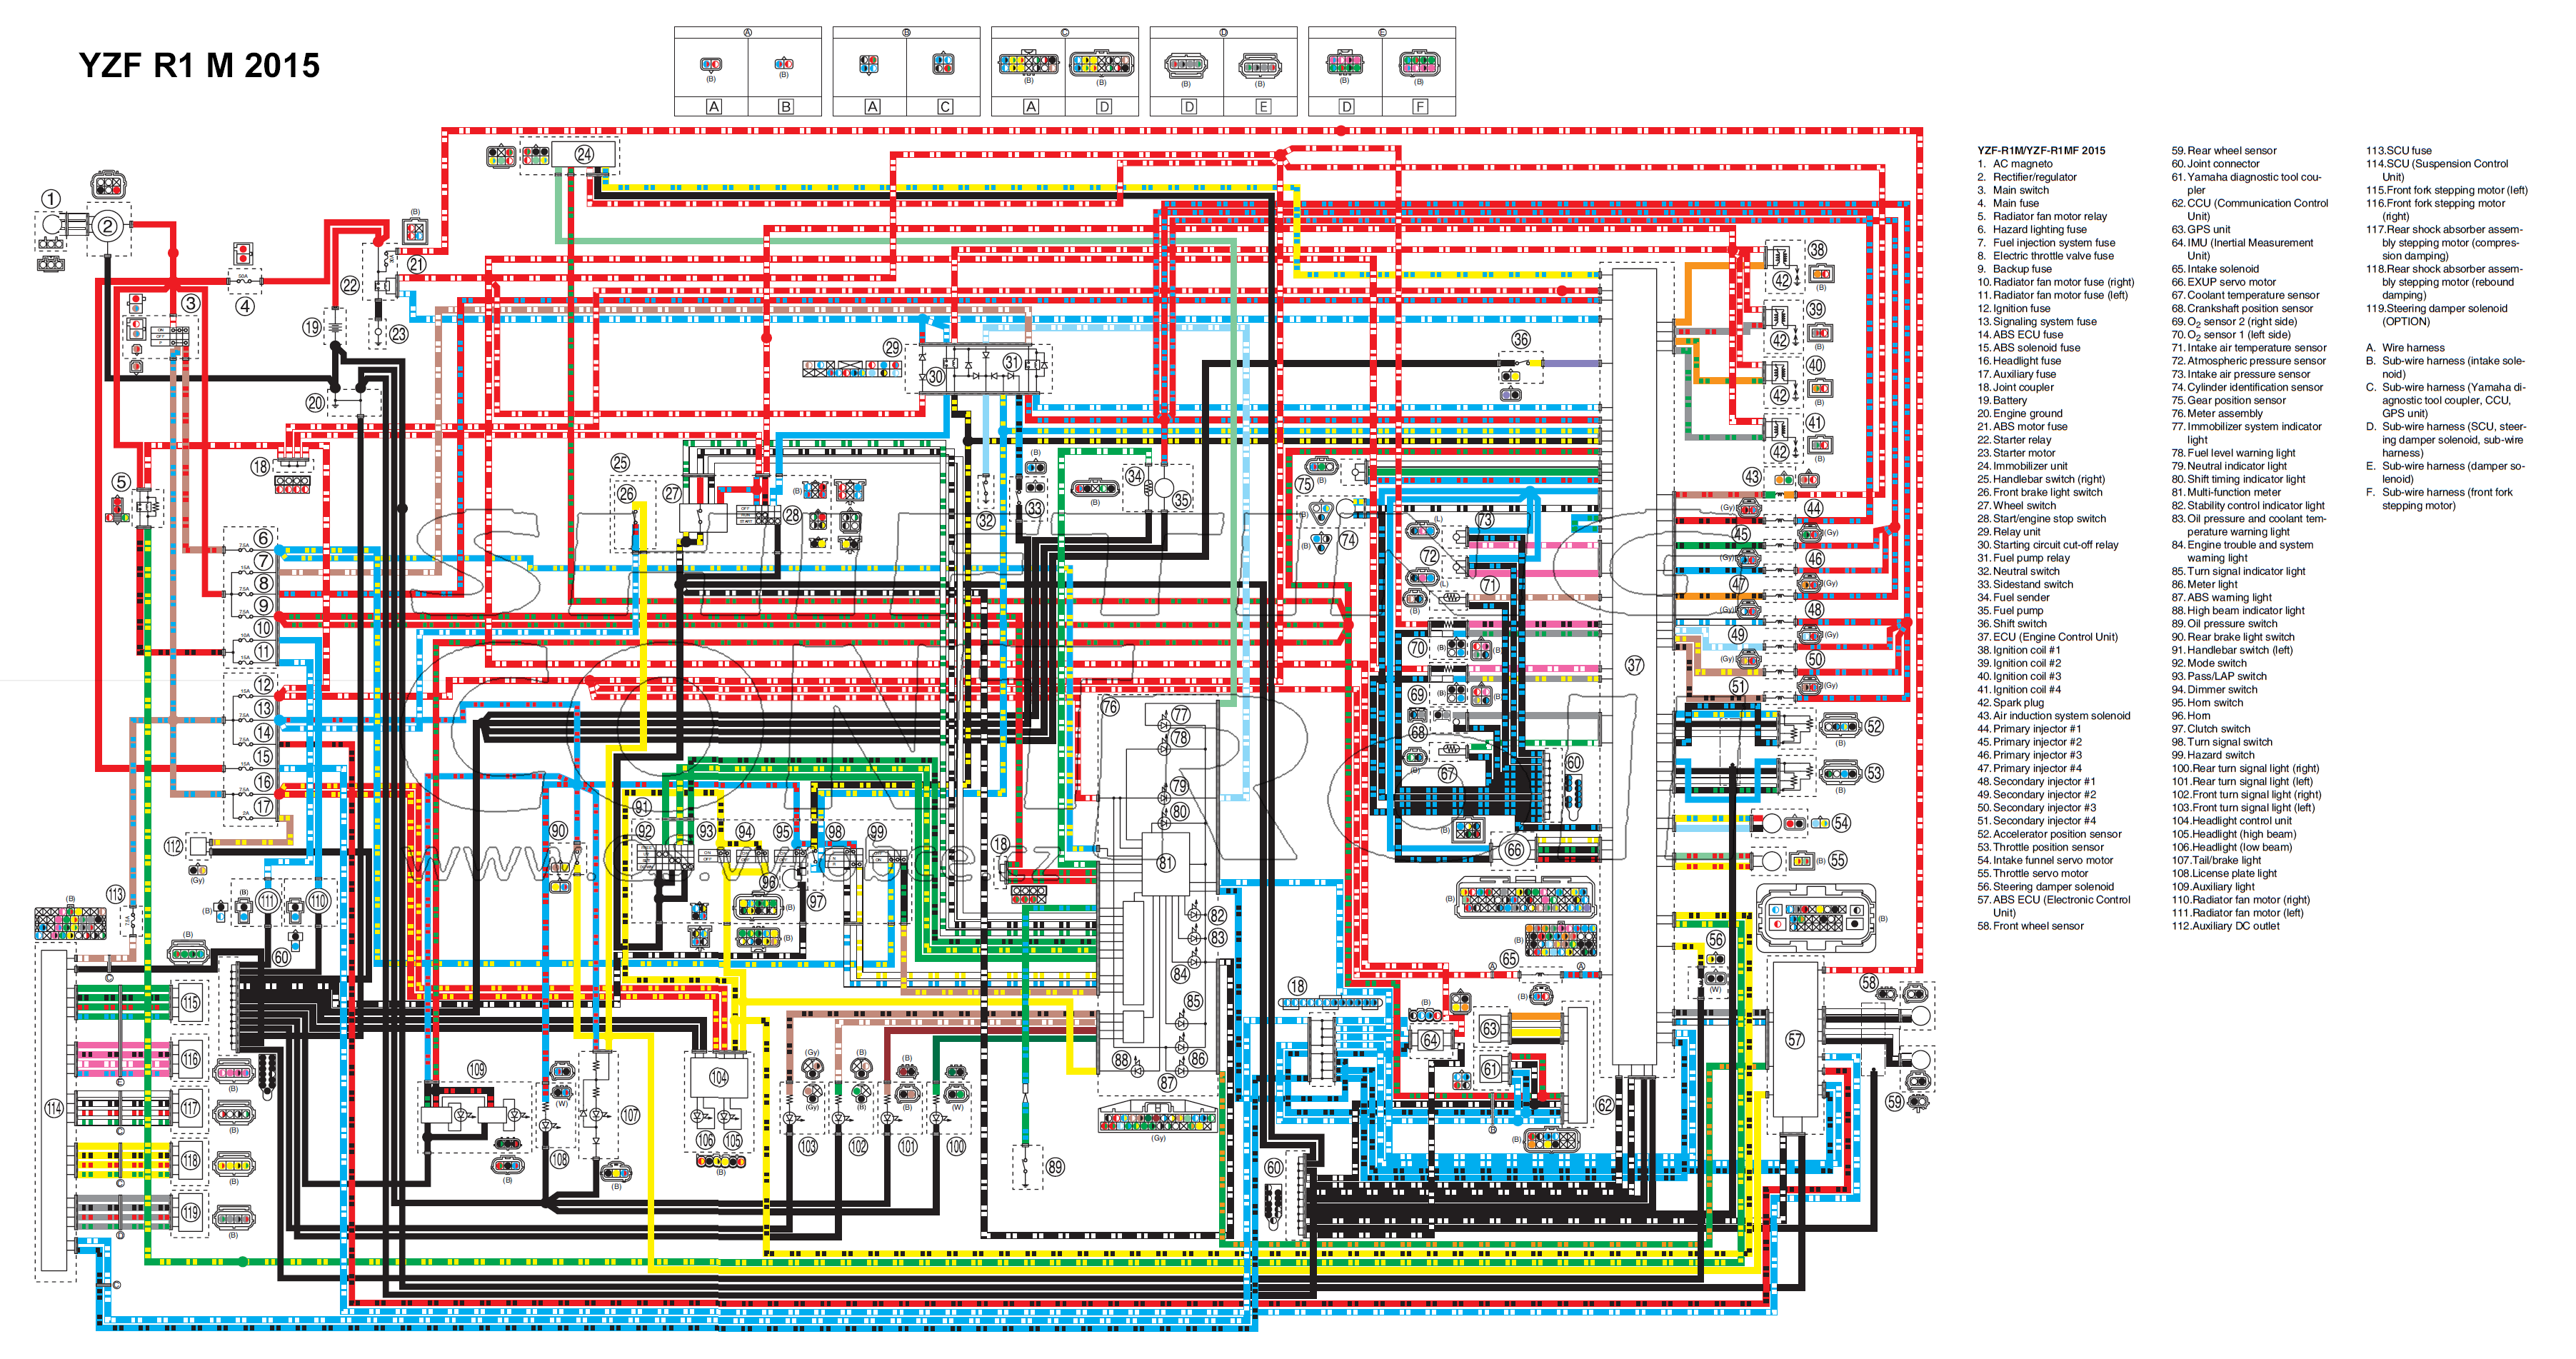 Wiring Diagrams 2009 R1 Diagram Front Yzf 2012